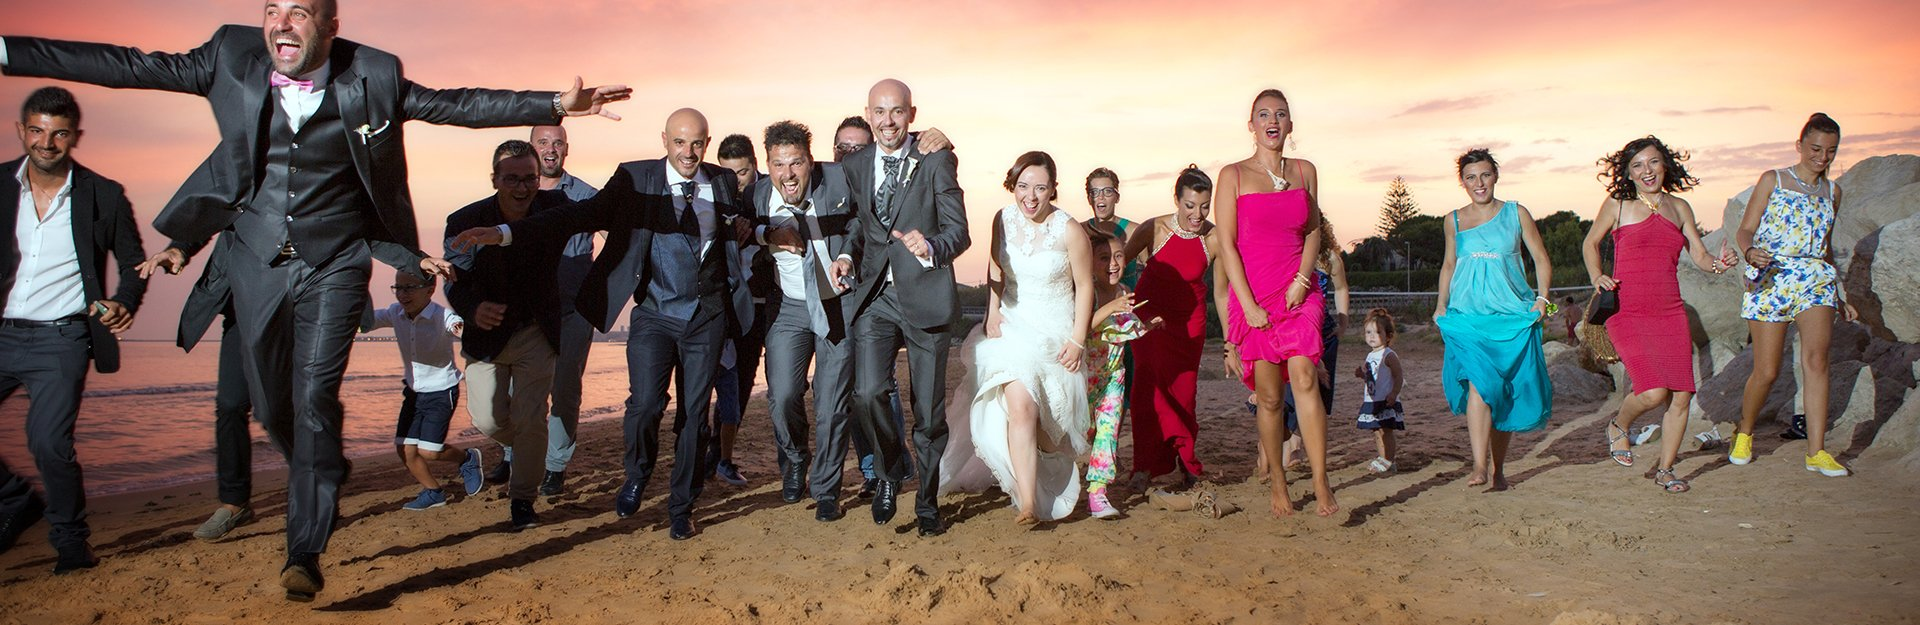 wedding photo gruppo